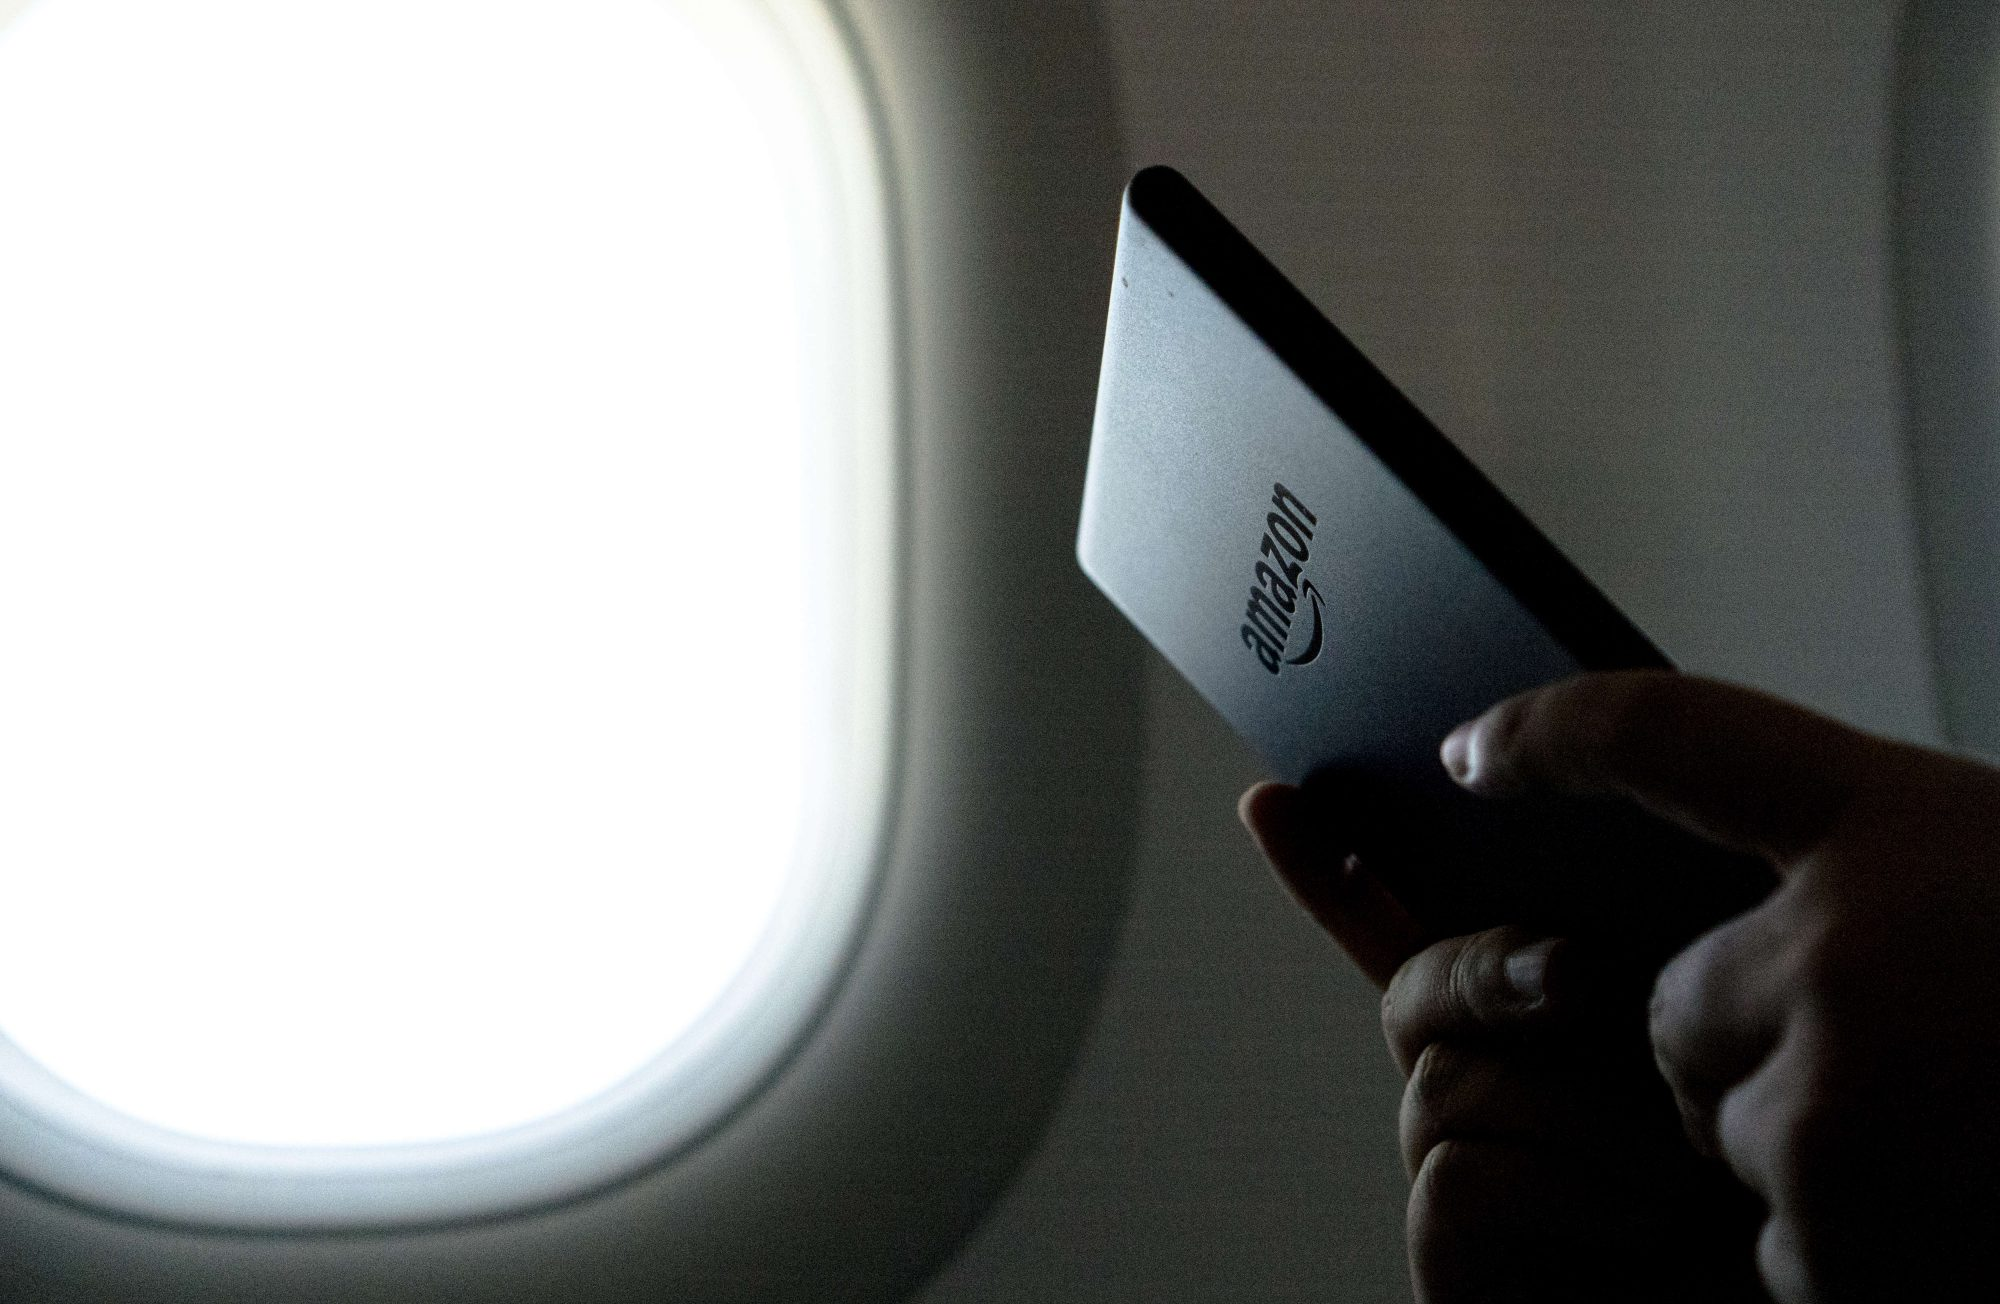 A person reads a kindle ebook on an airplane.  Amazon